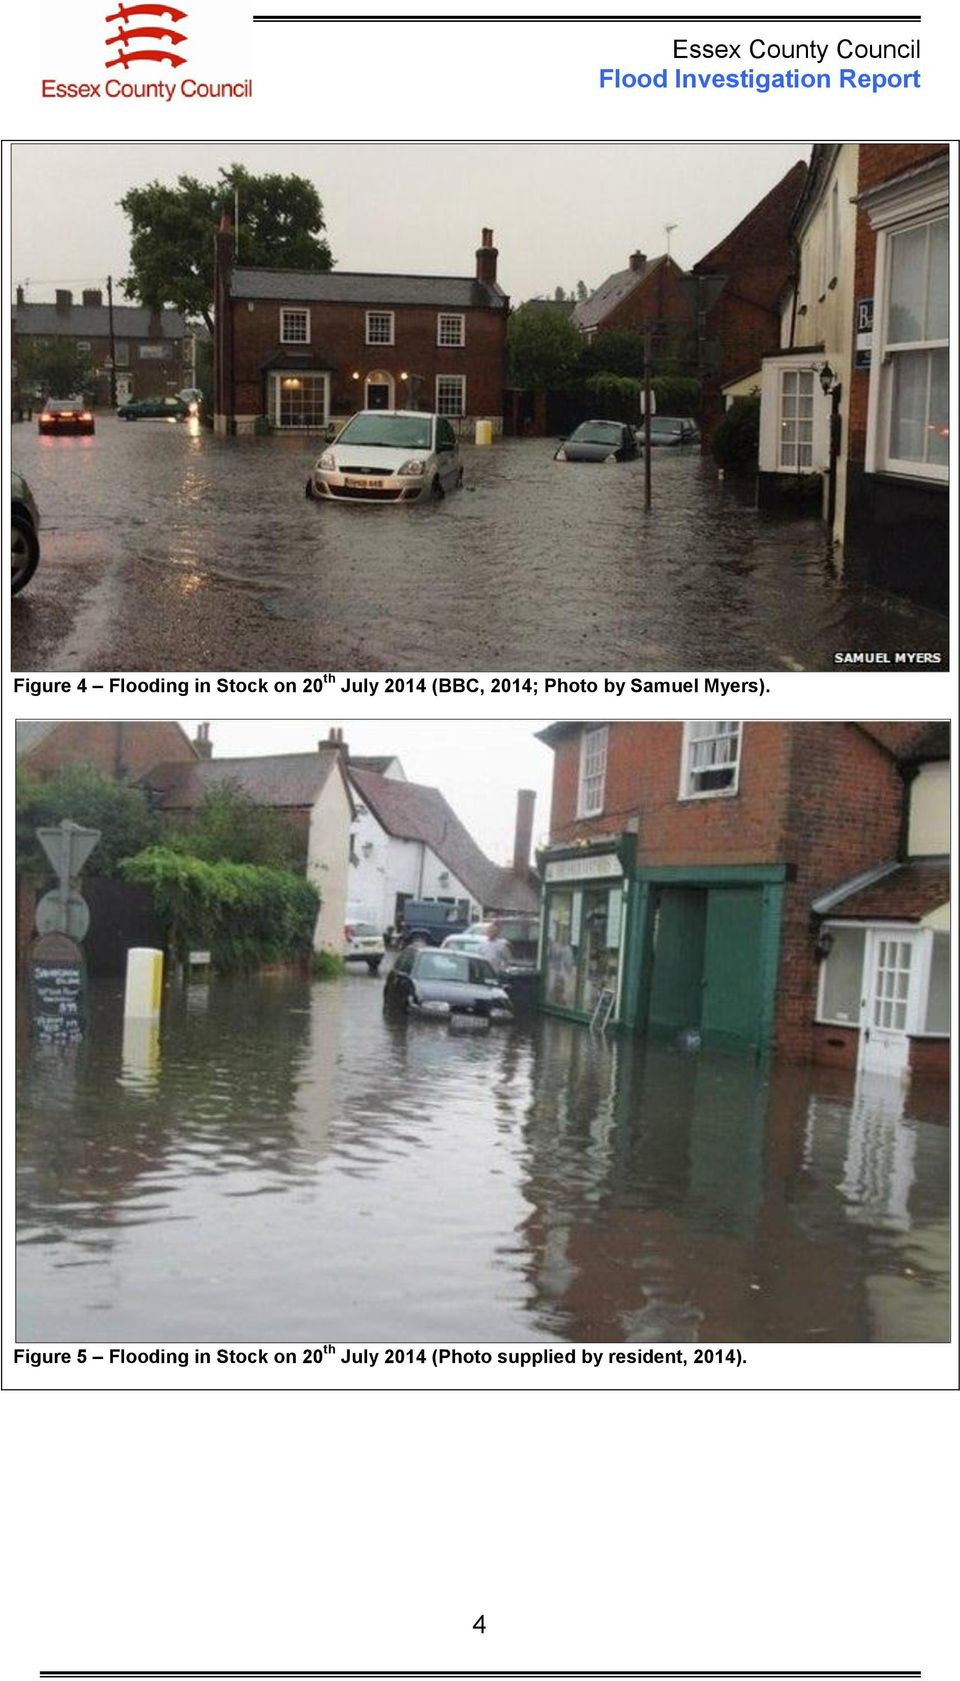 Figure 5 Flooding in Stock on 20 th July